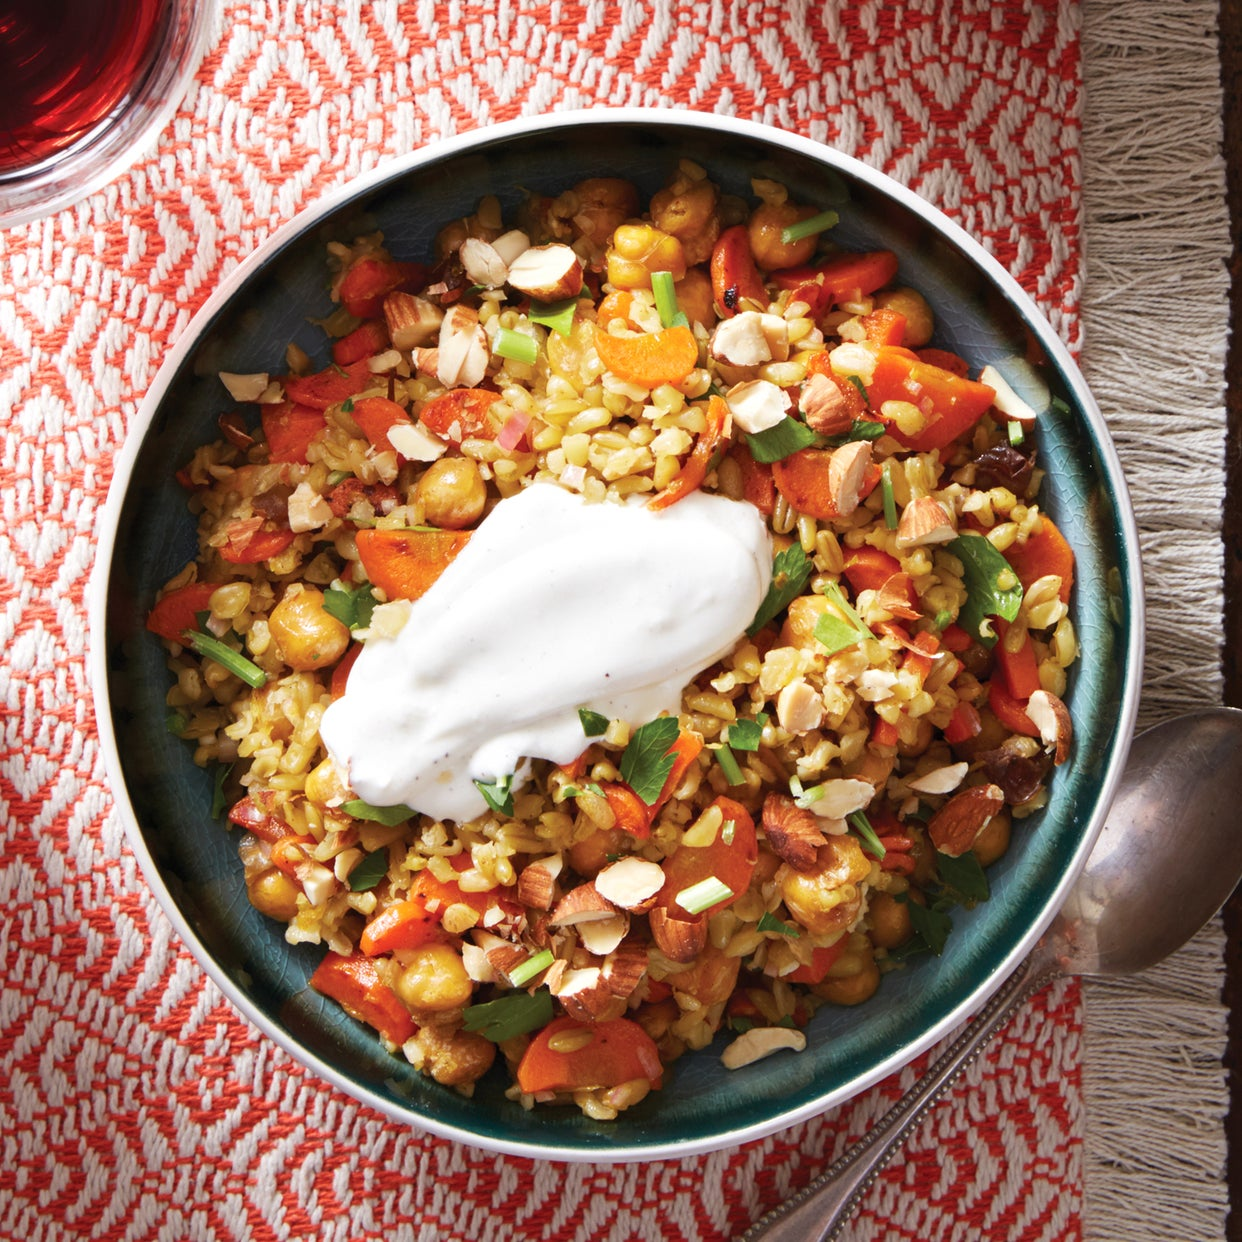 Crispy Chickpea & Freekeh Salad with Lemon Labneh & Harissa-Glazed Carrots